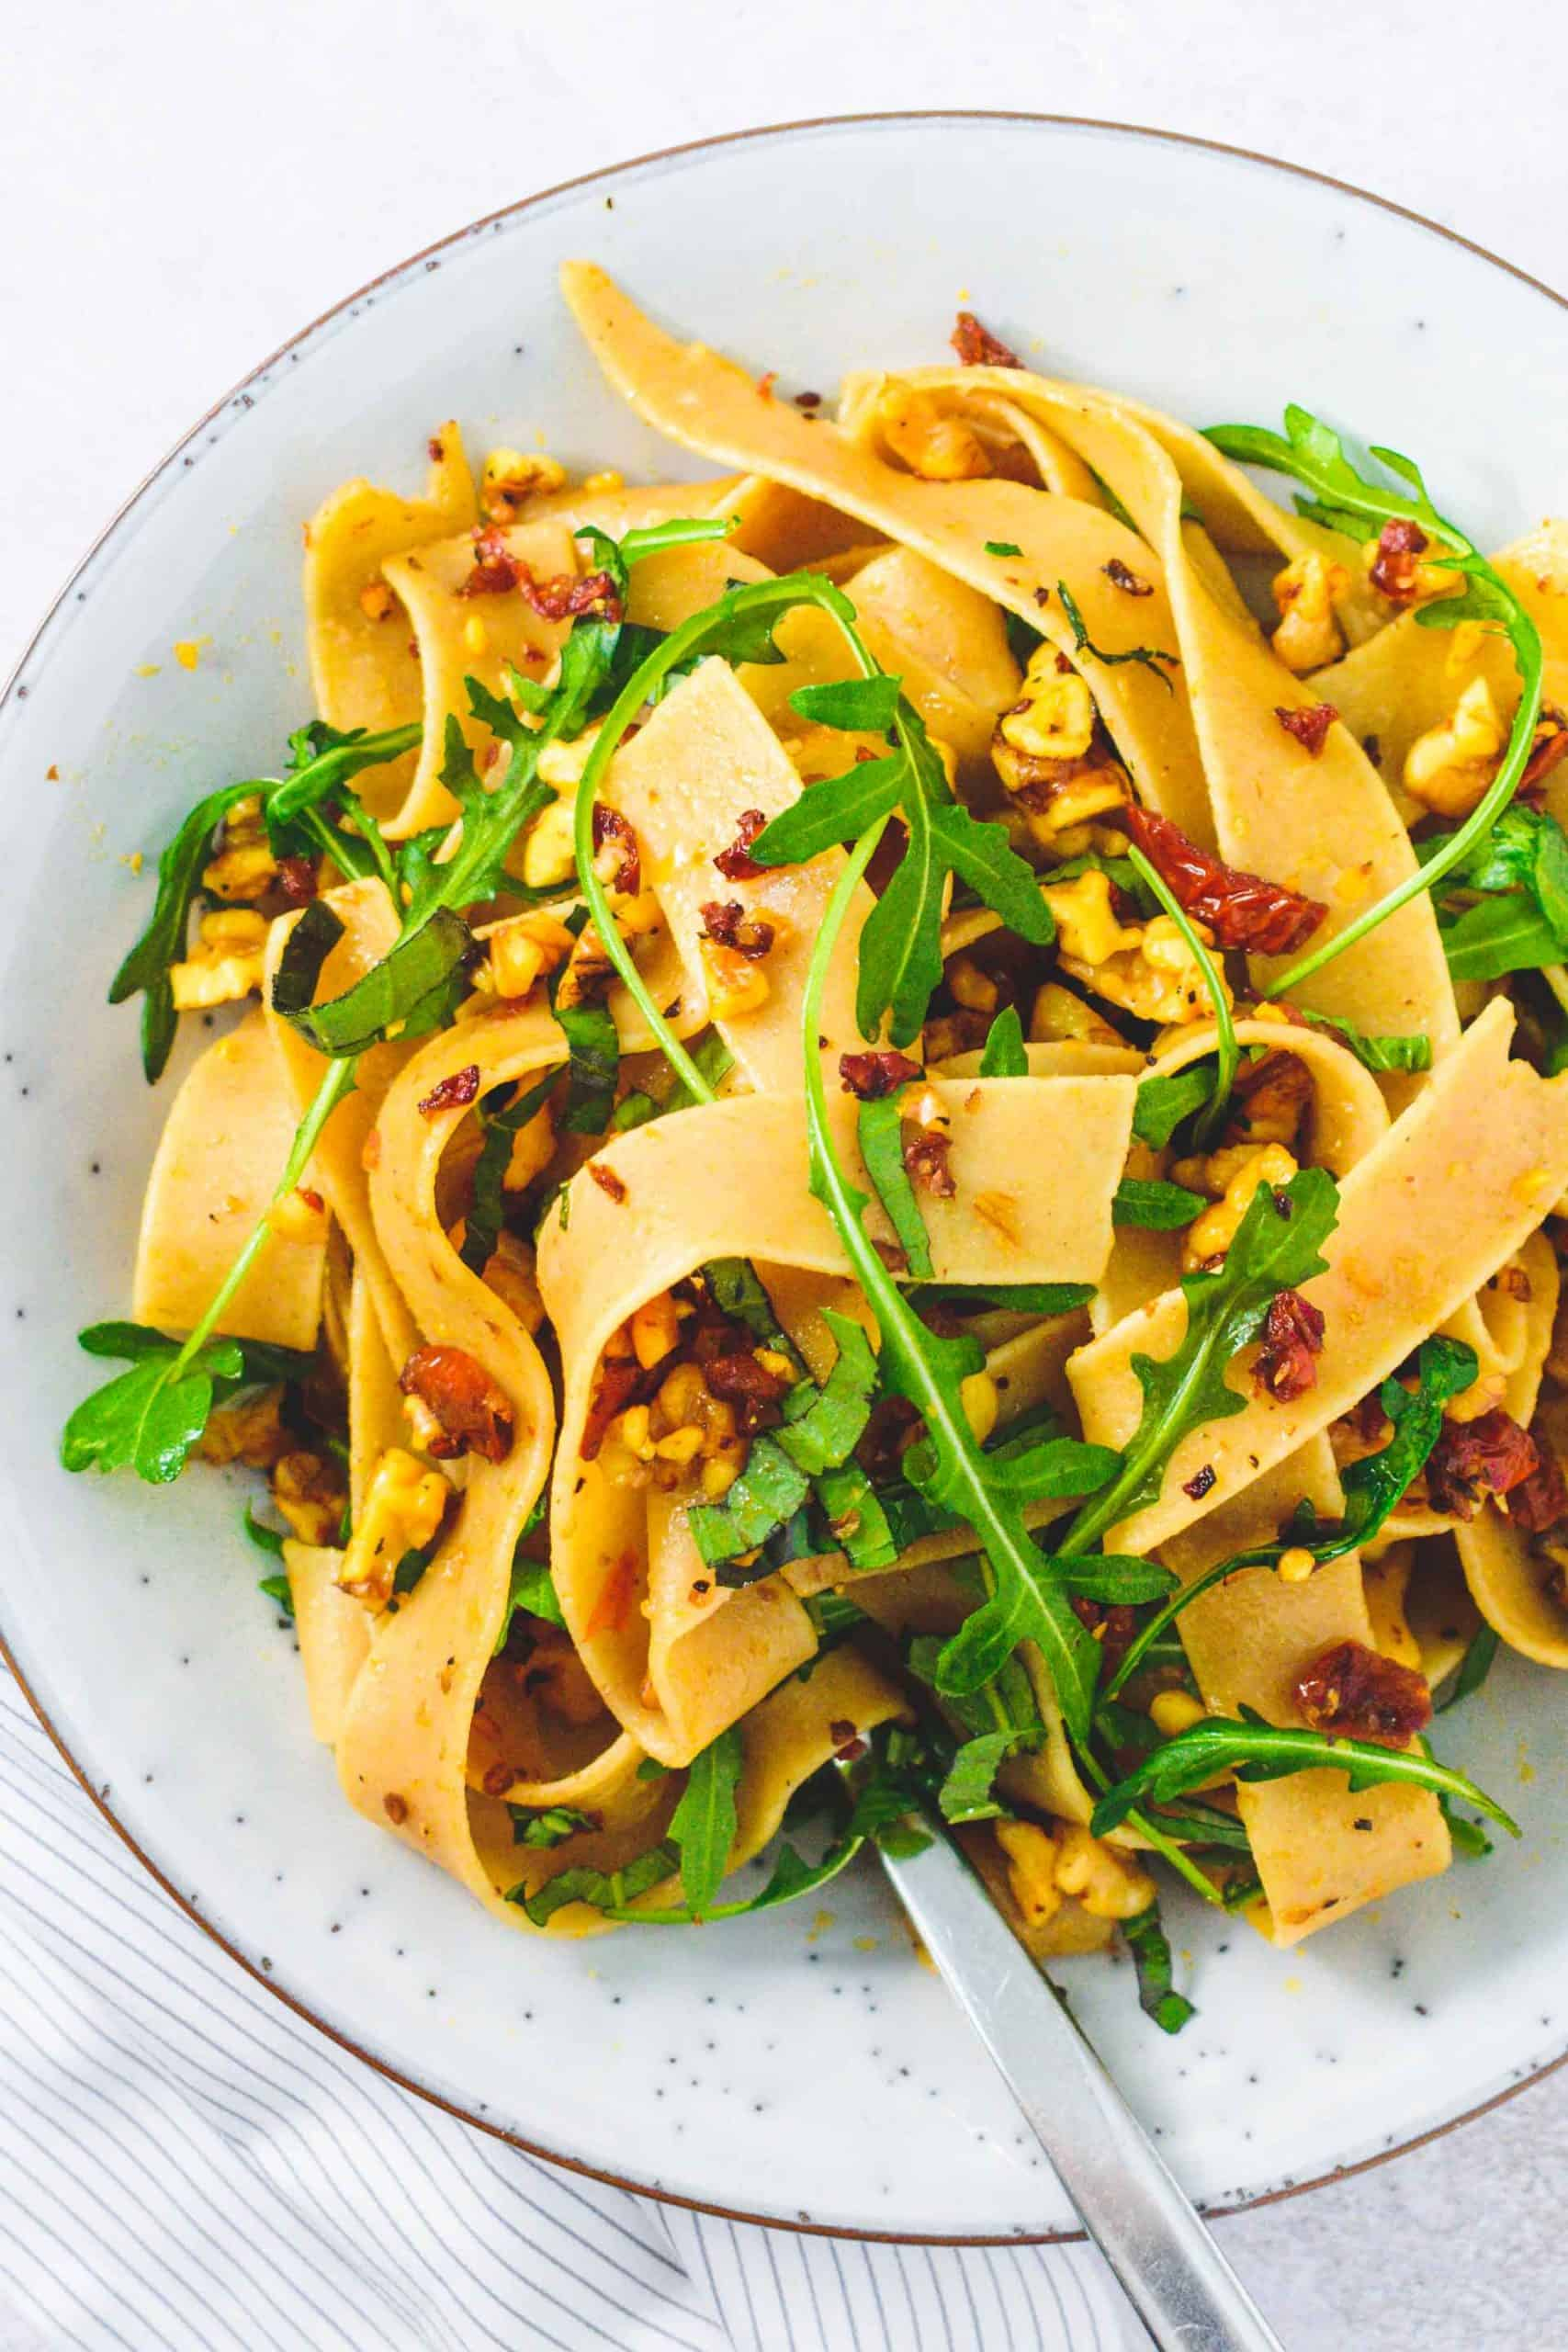 Whole wheat pappardelle with sundried tomatoes, rocket and walnuts in a round pasta bowl with fork